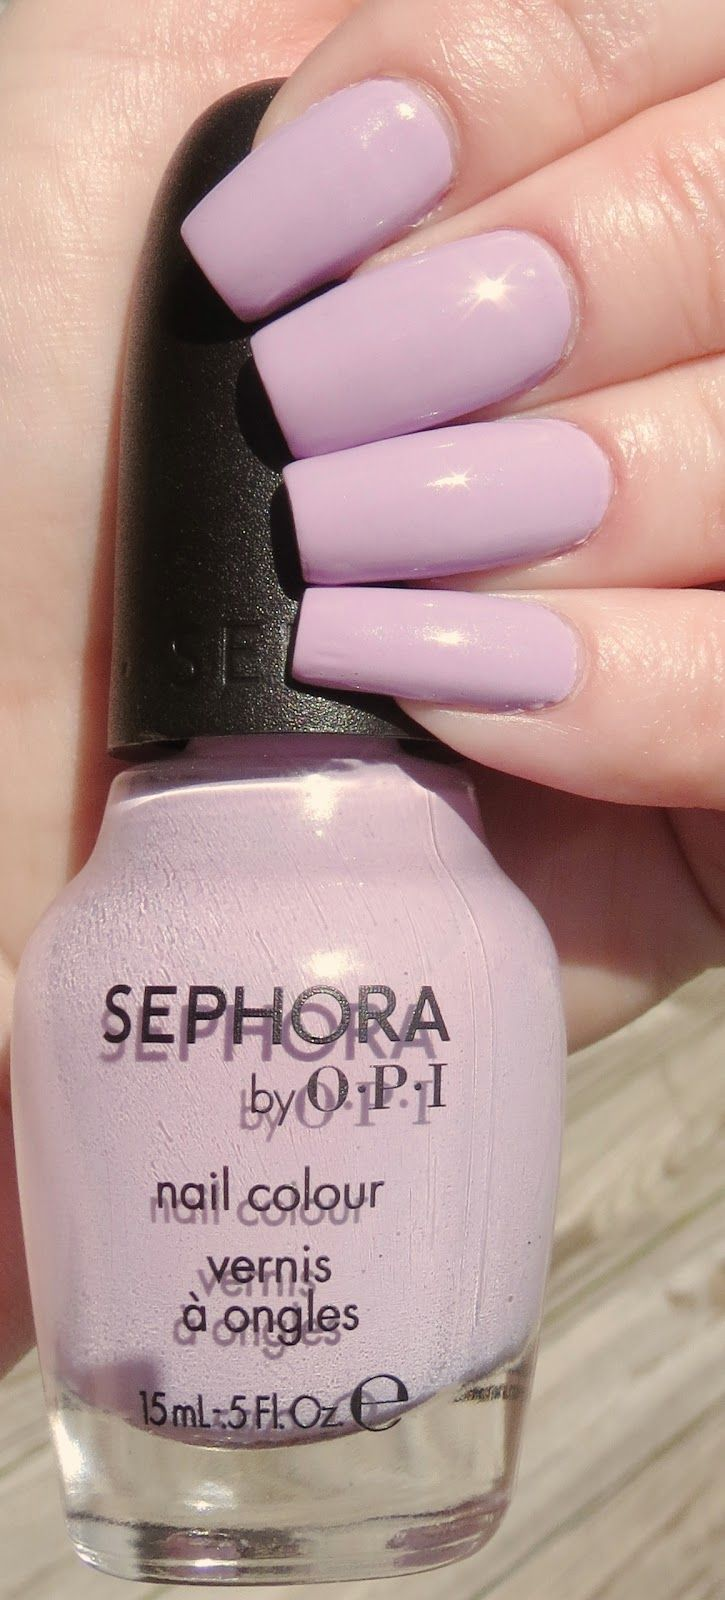 It's Hippo to Be Square Manicure - Sephora by OPI  #opi #sephora #itshippotobesquare #hippo #manicure #nailpolish #naillacquer #thinkspring #spring #lilac #creme #pretty #sechevite #perfectformula #manicurebooster #pastel